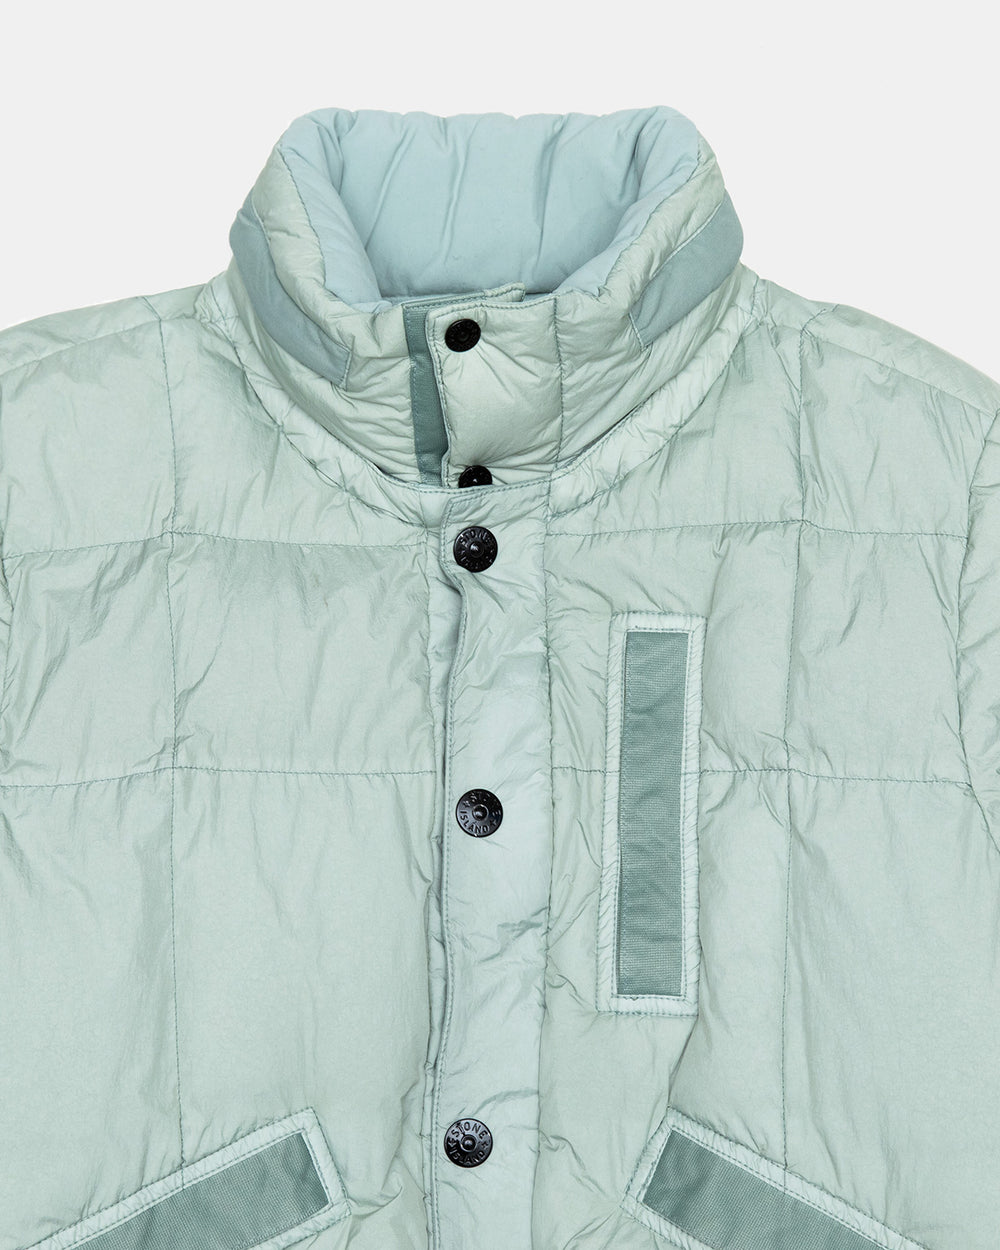 Stone Island - 40123 Garment Dyed Crinkle Reps NY Down Jacket (Dust)